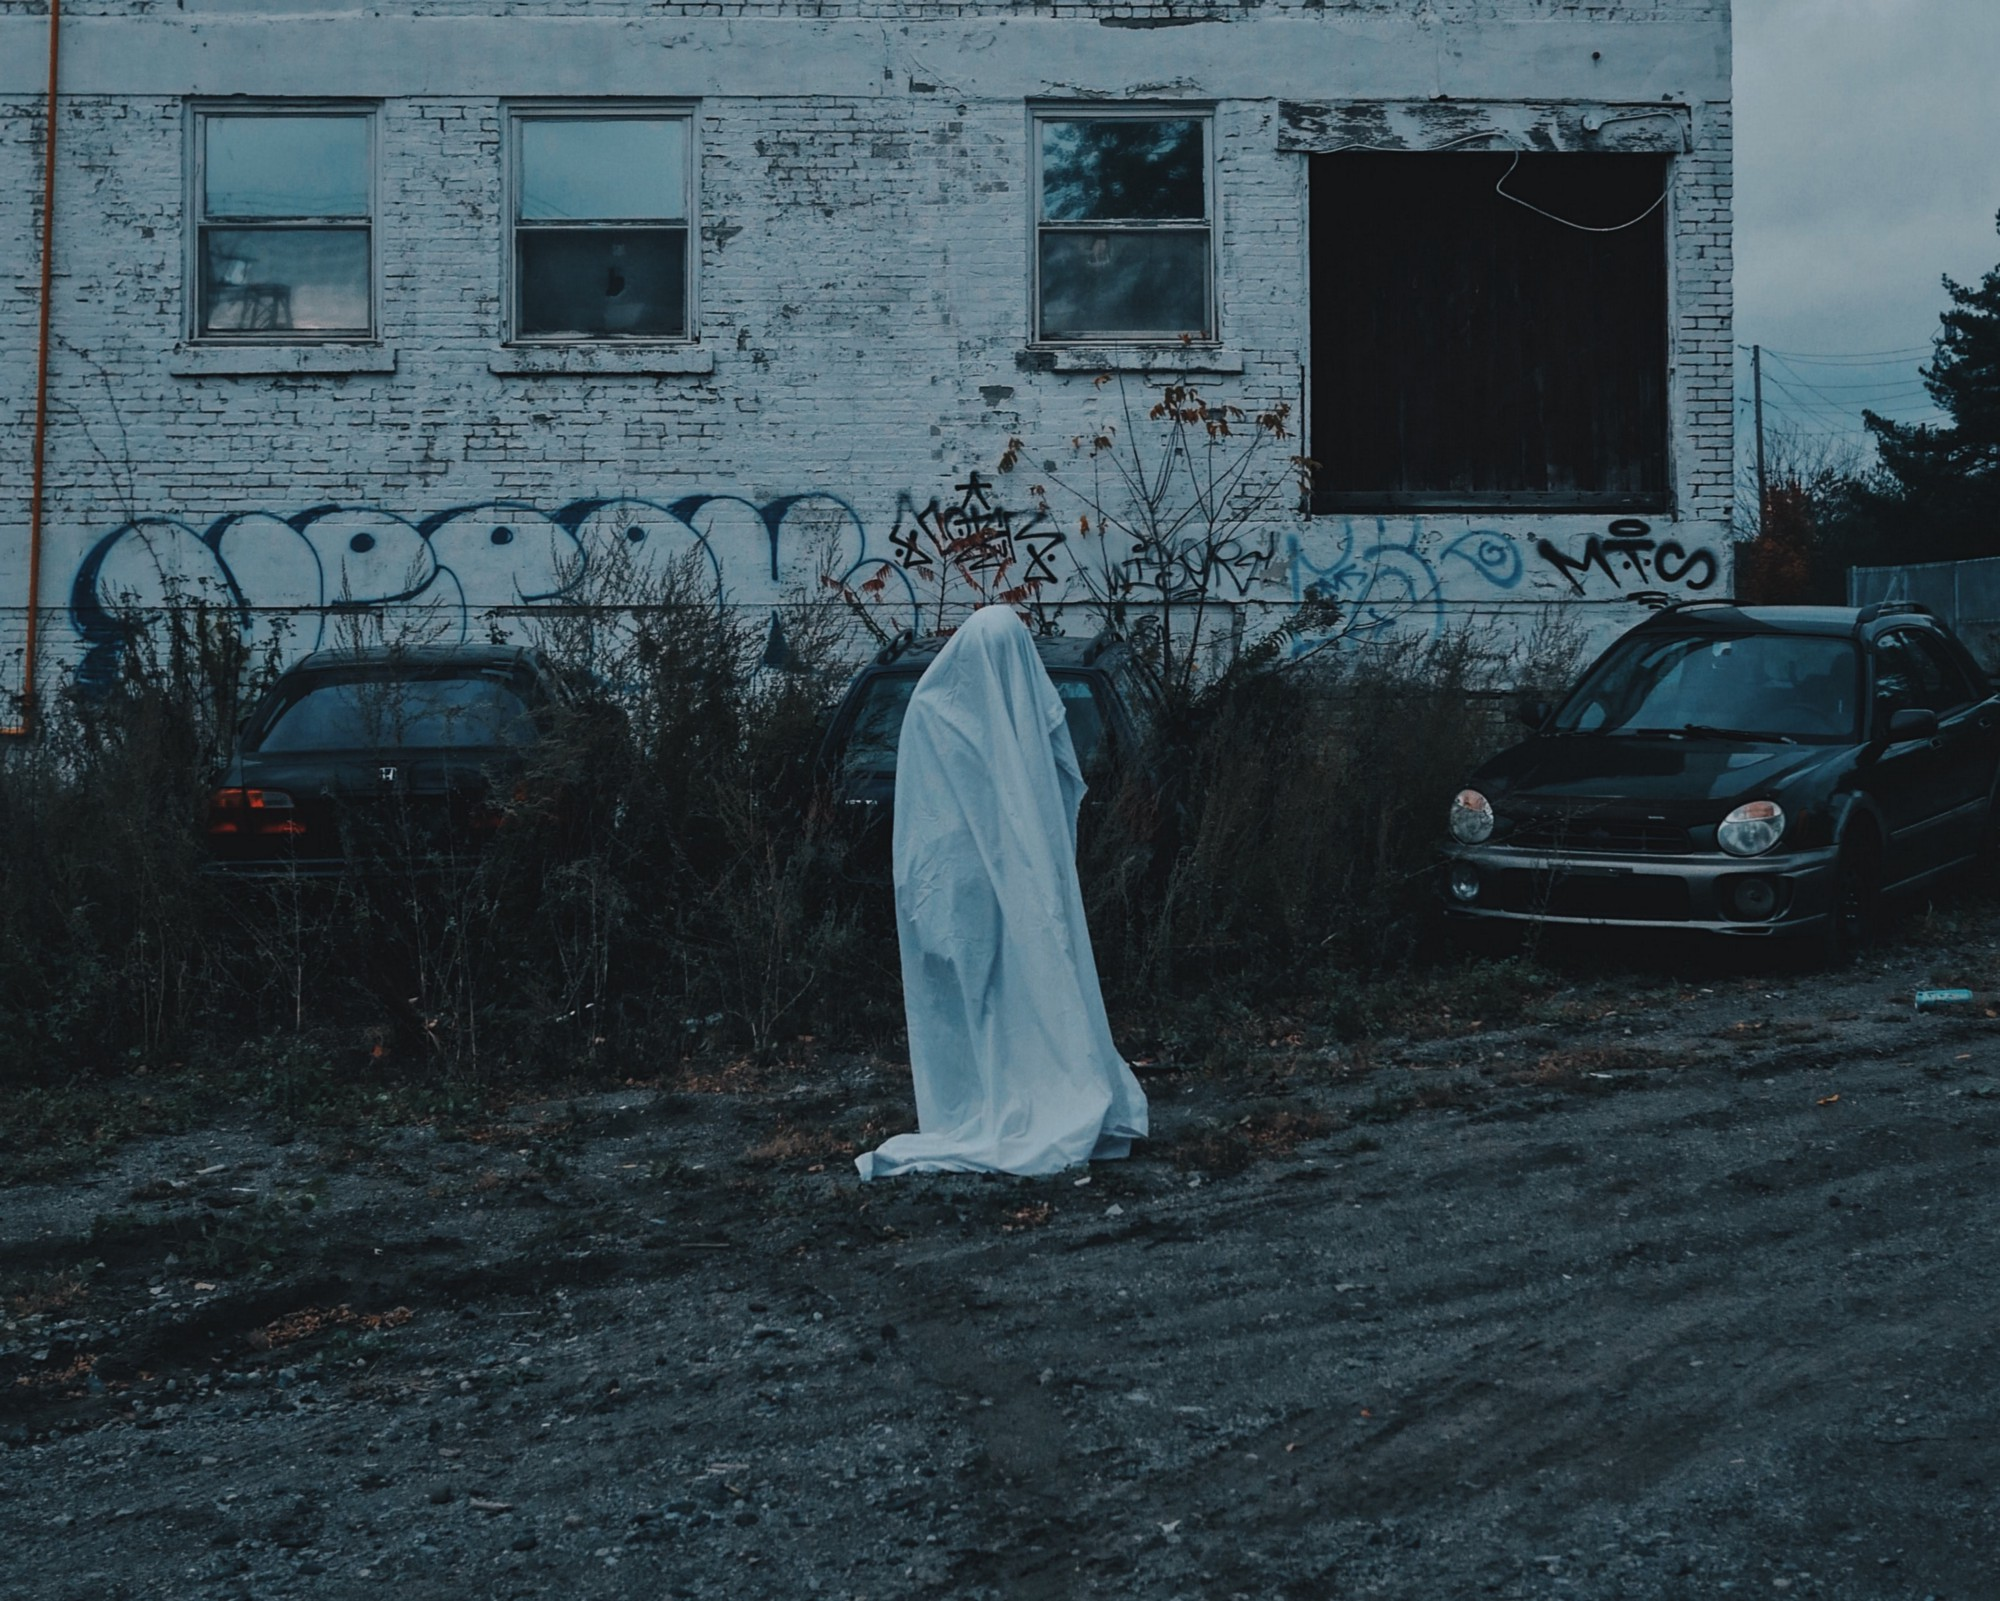 A kid underneath a sheet pretending to be a ghost by an abandoned building